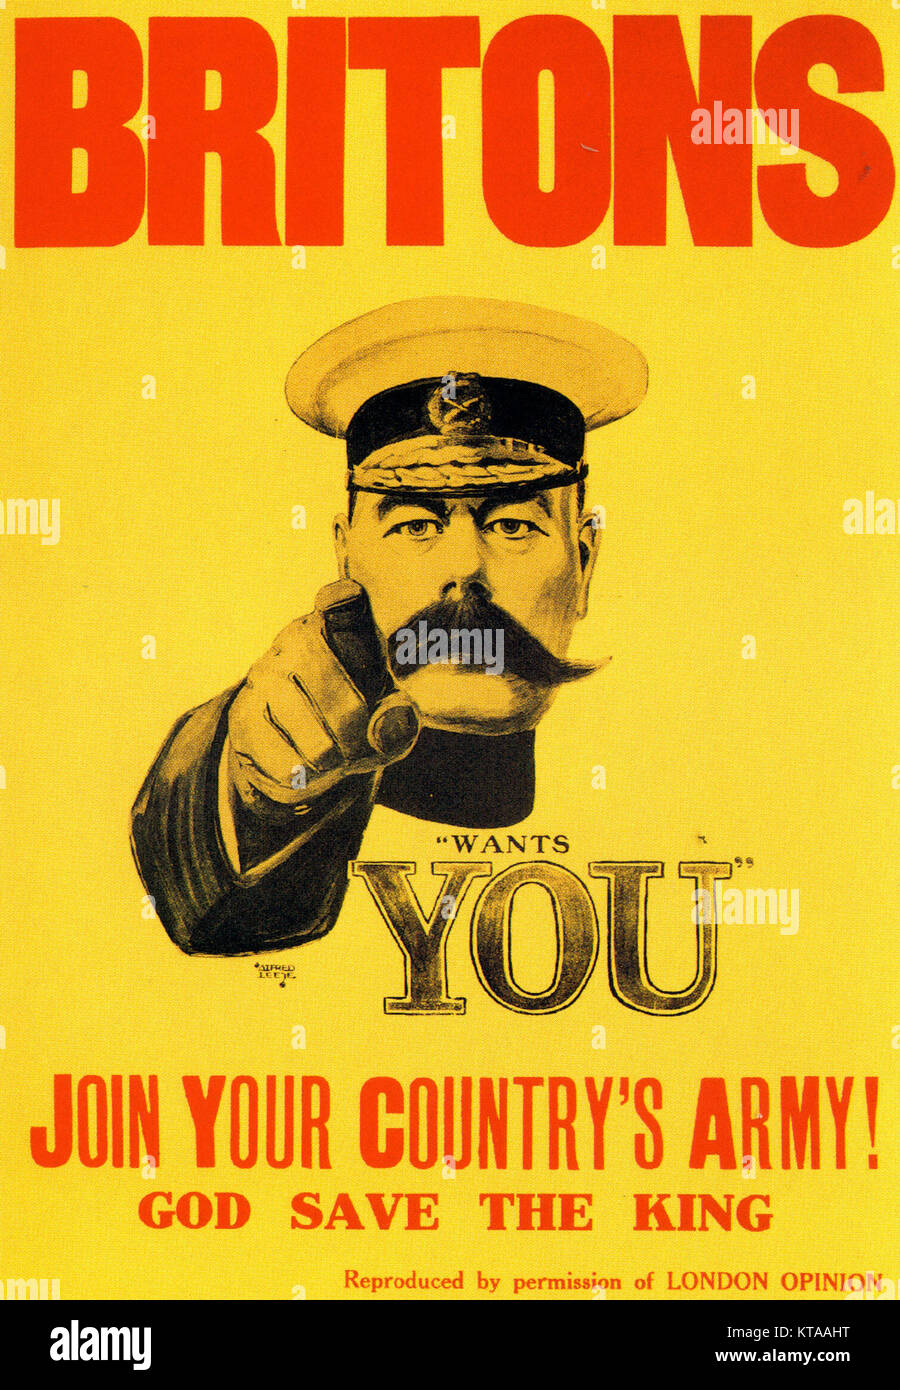 HERBERT KITCHENER, 1st Earl Kitchener (1850-1916) on the iconic 1914 British recruiting poster designed by Alfred - Stock Image